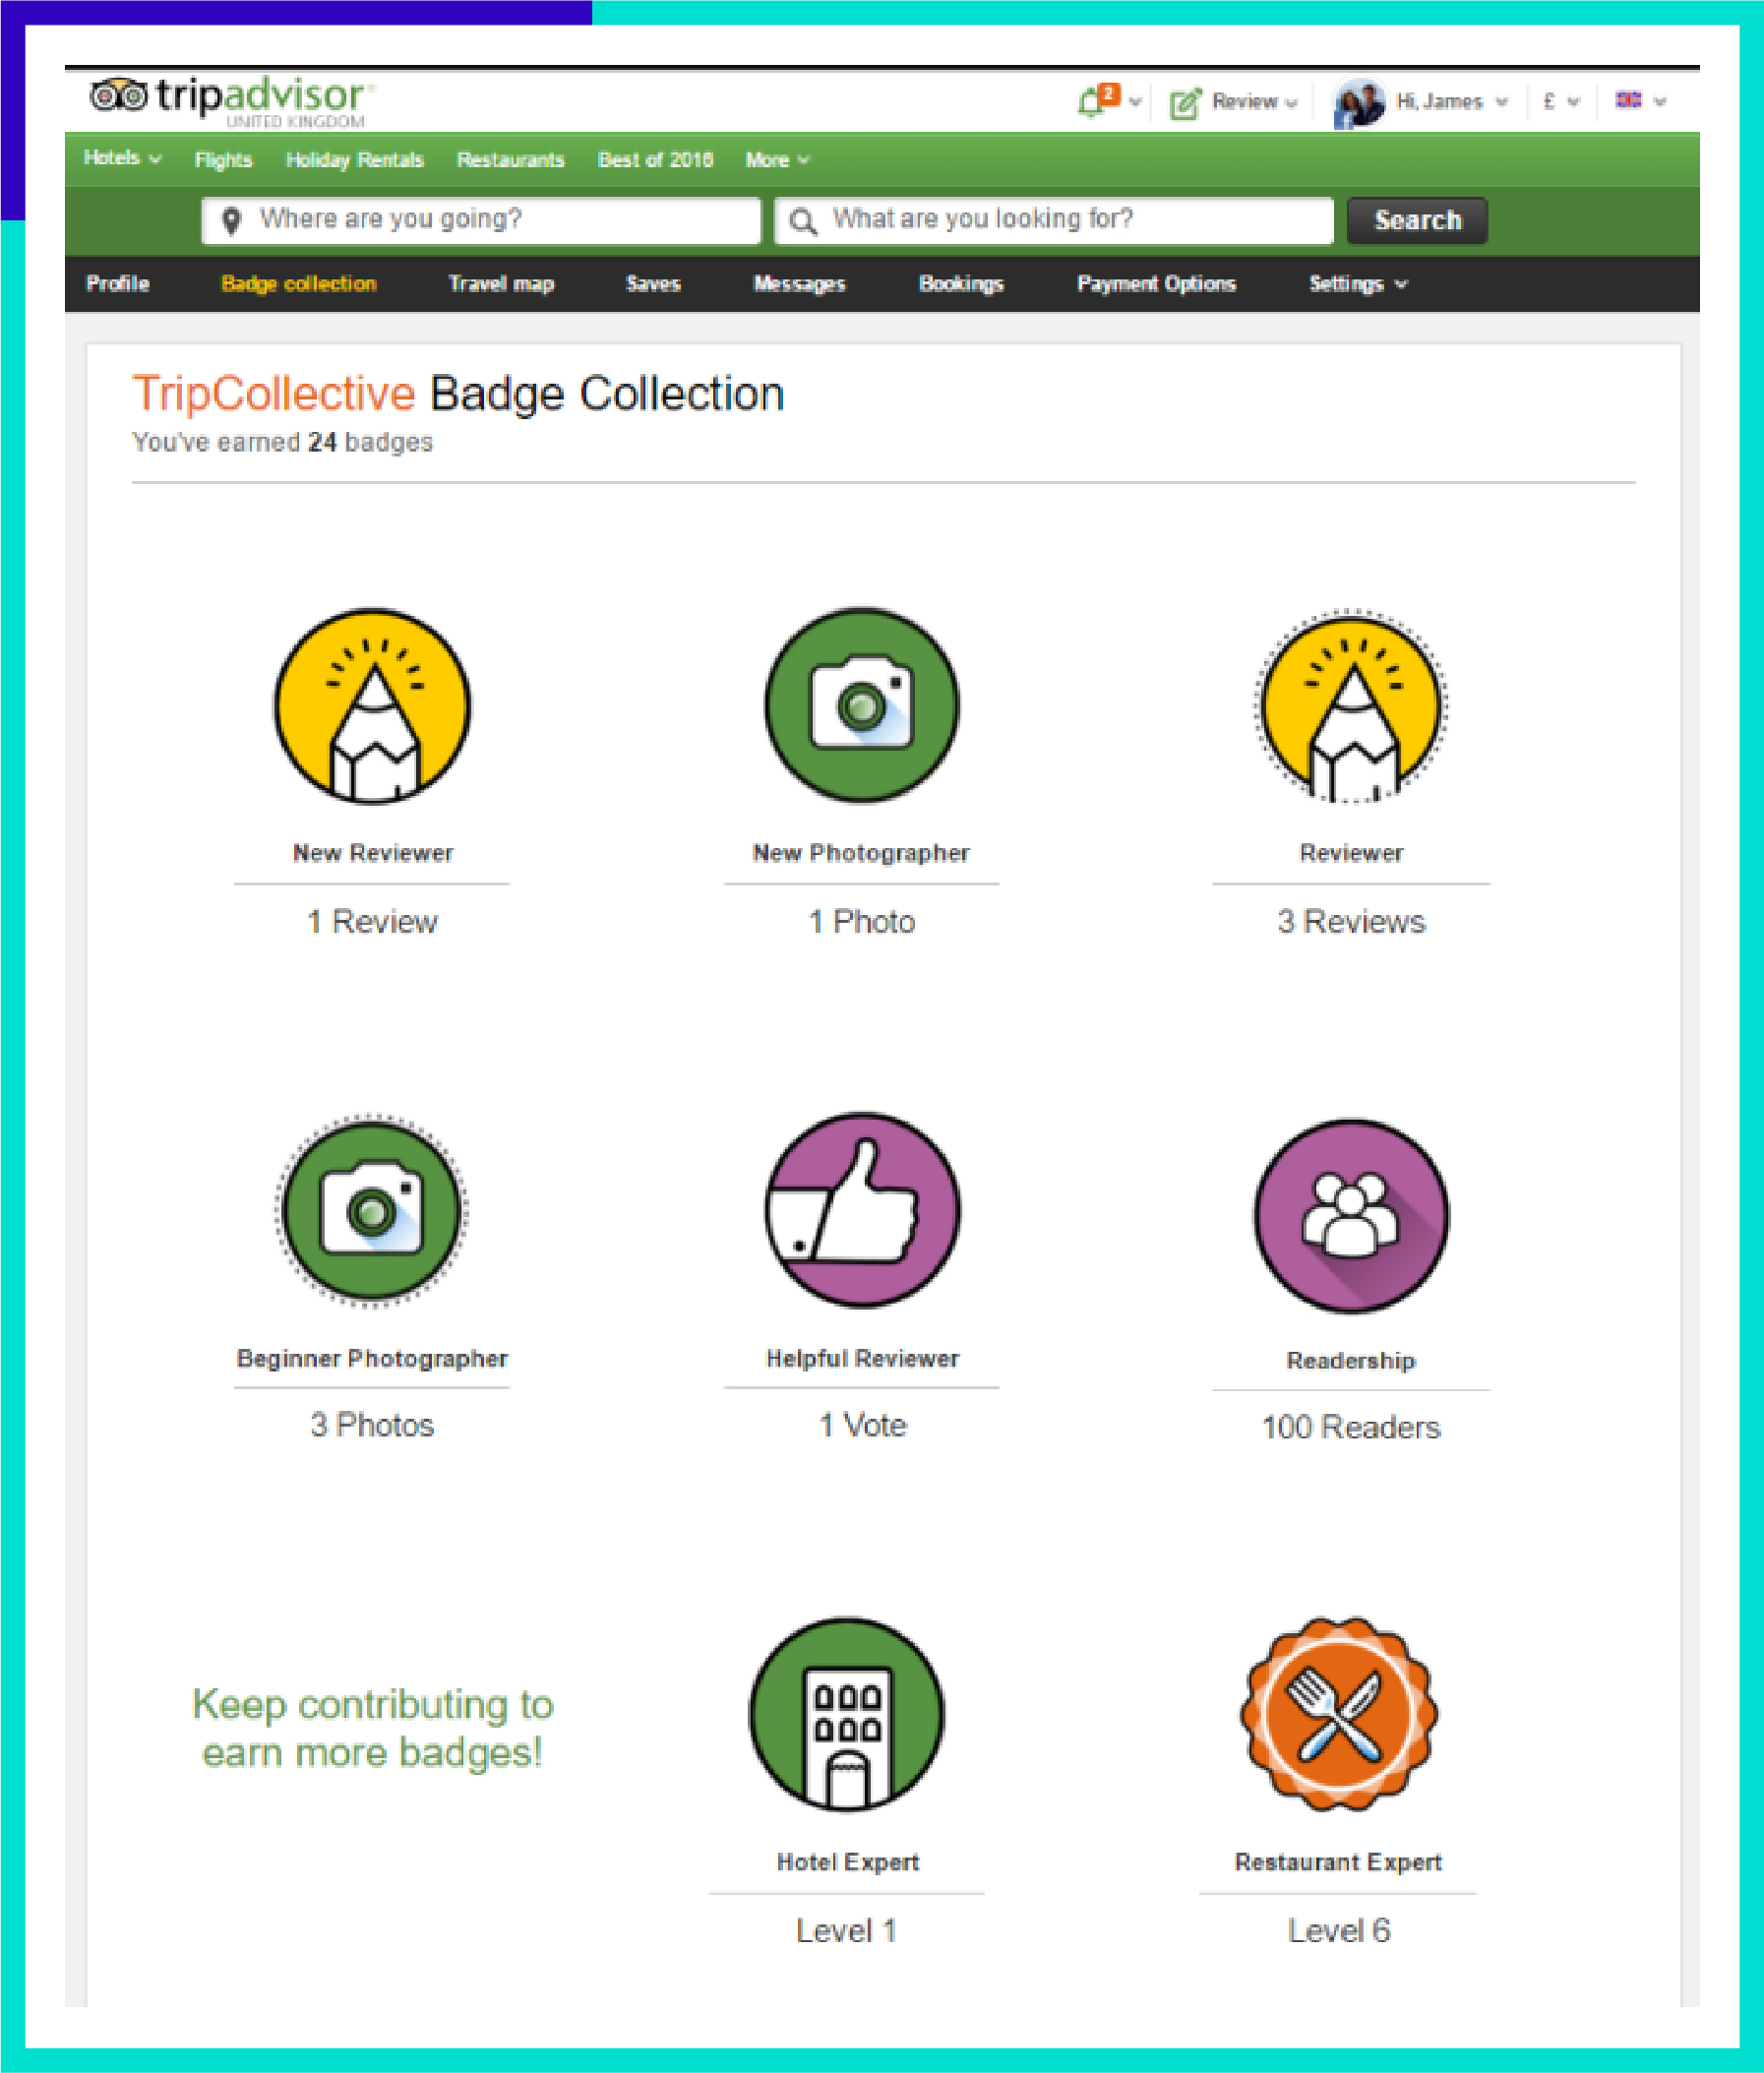 Example of Tripadvisor gamified badges reward system